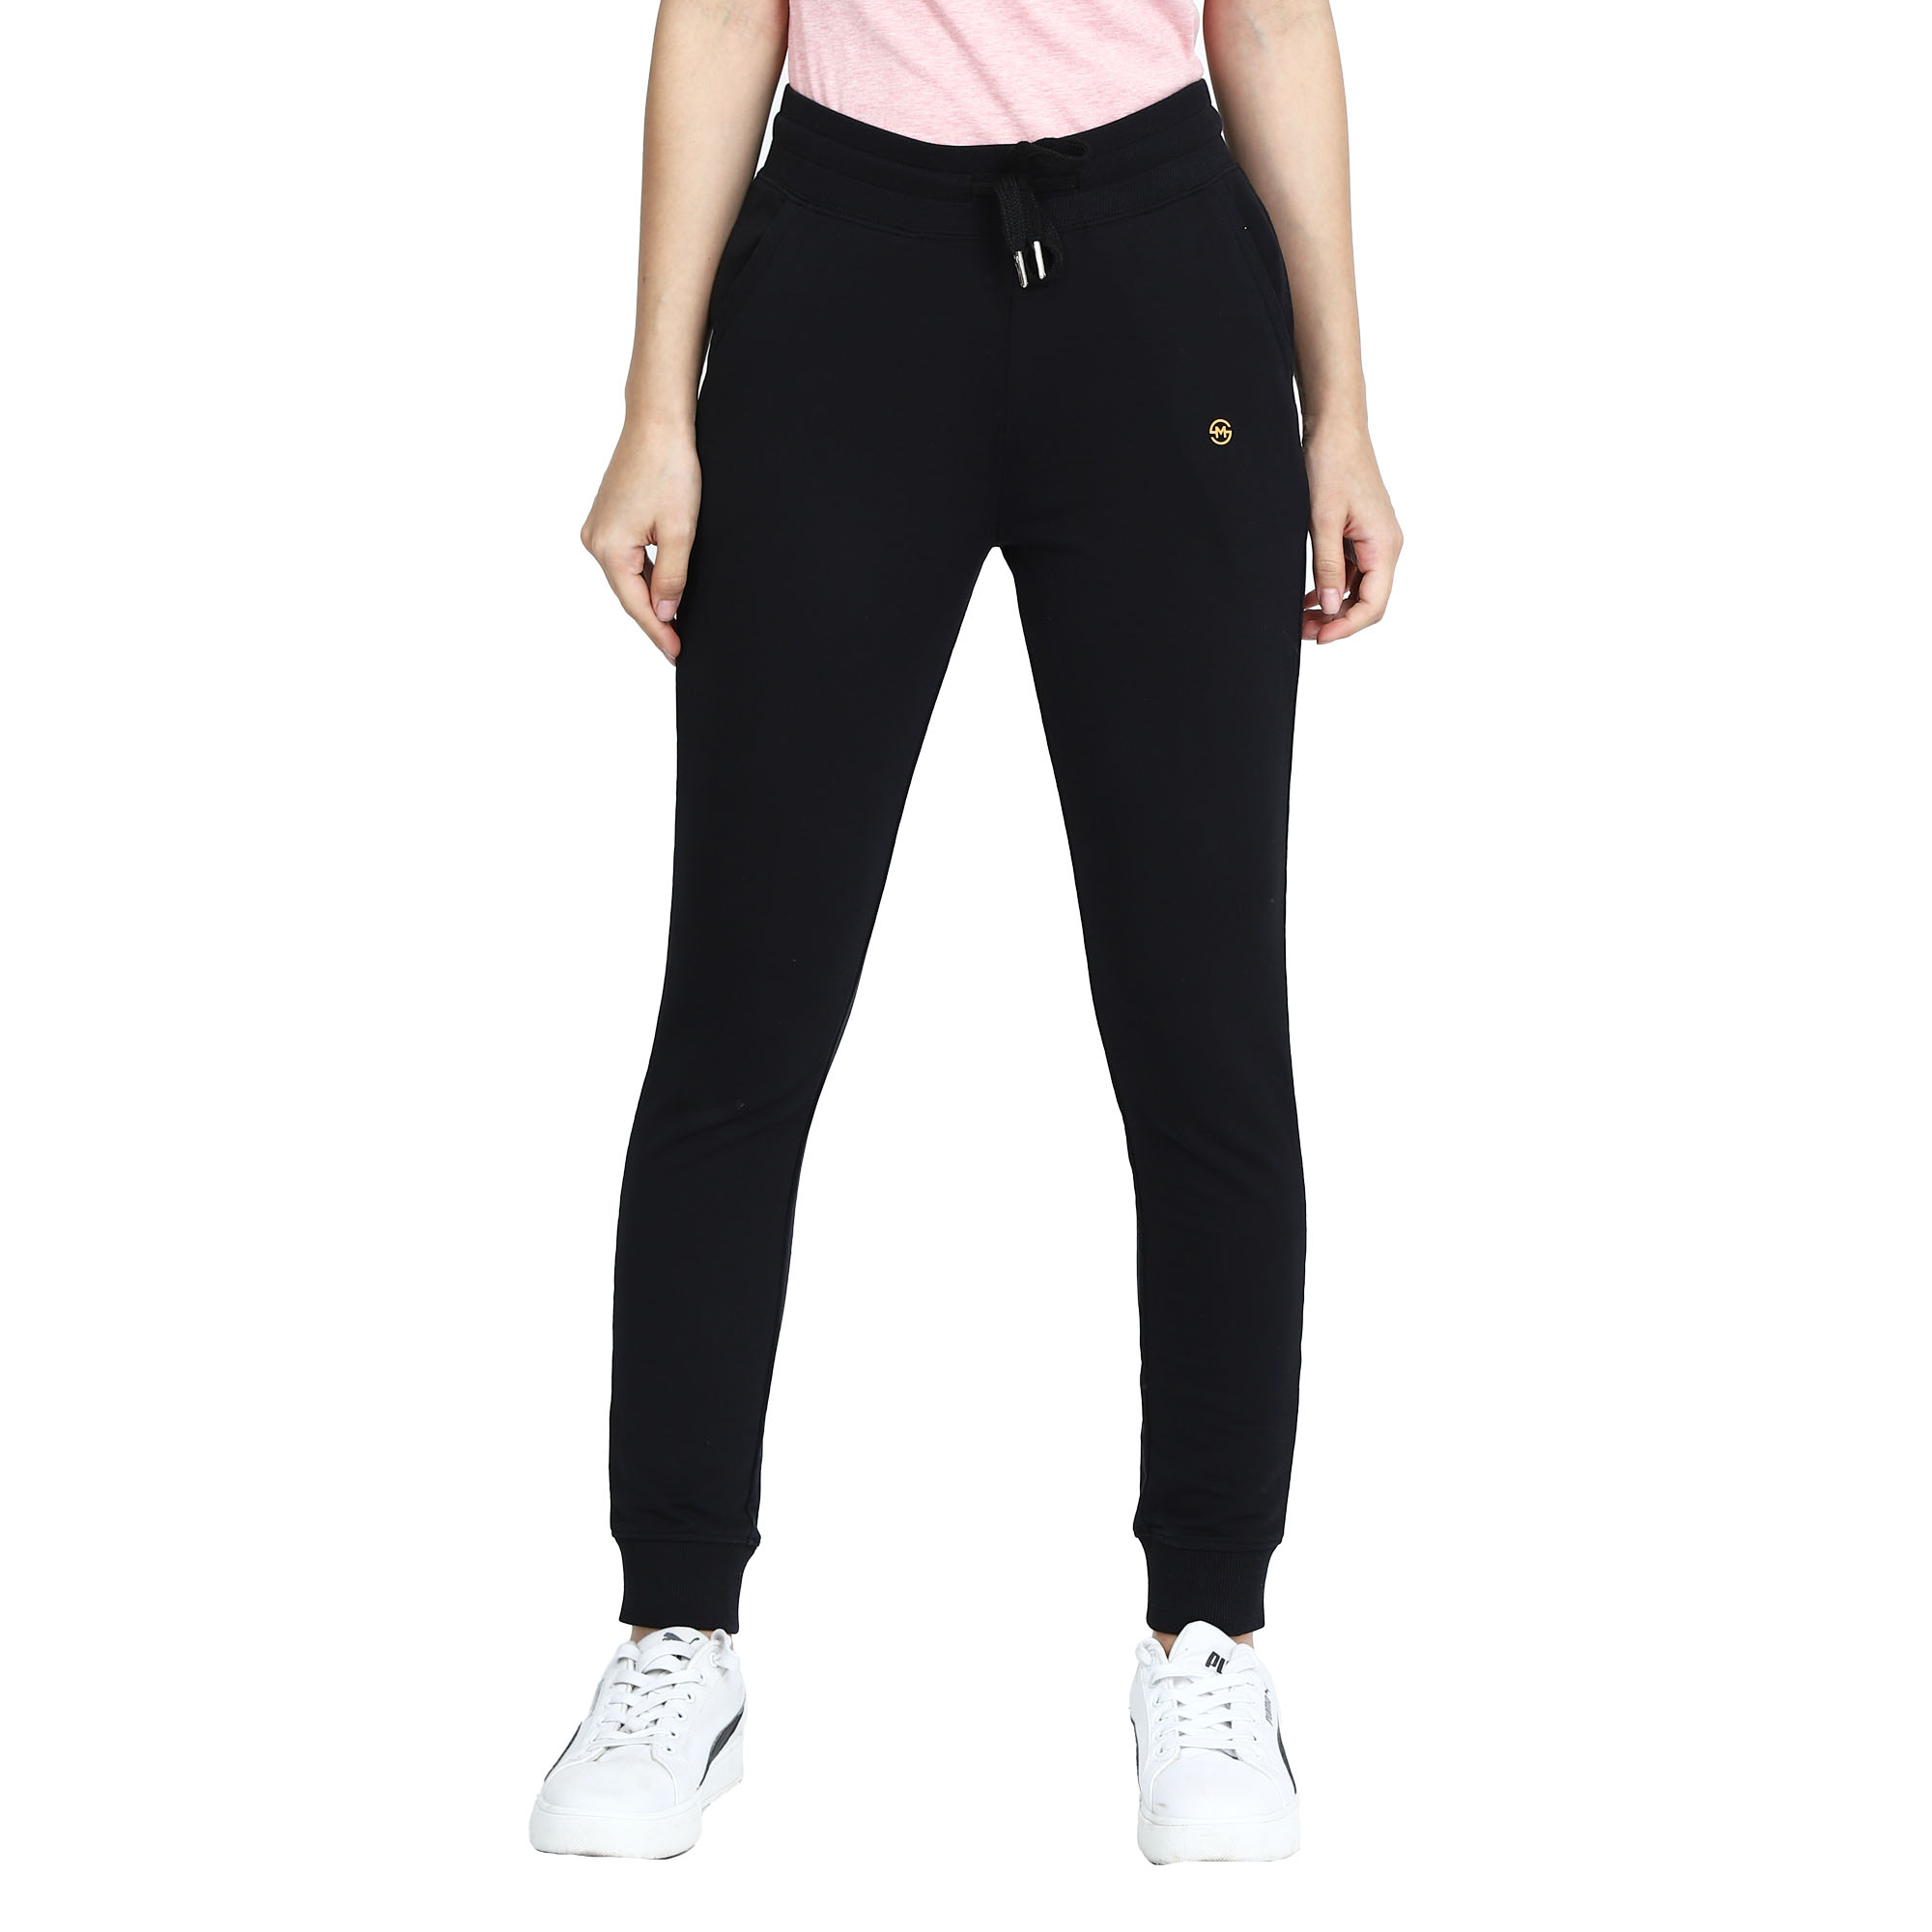 MAYSIXTY | Maysixty Women's Cotton Solid Track Pent